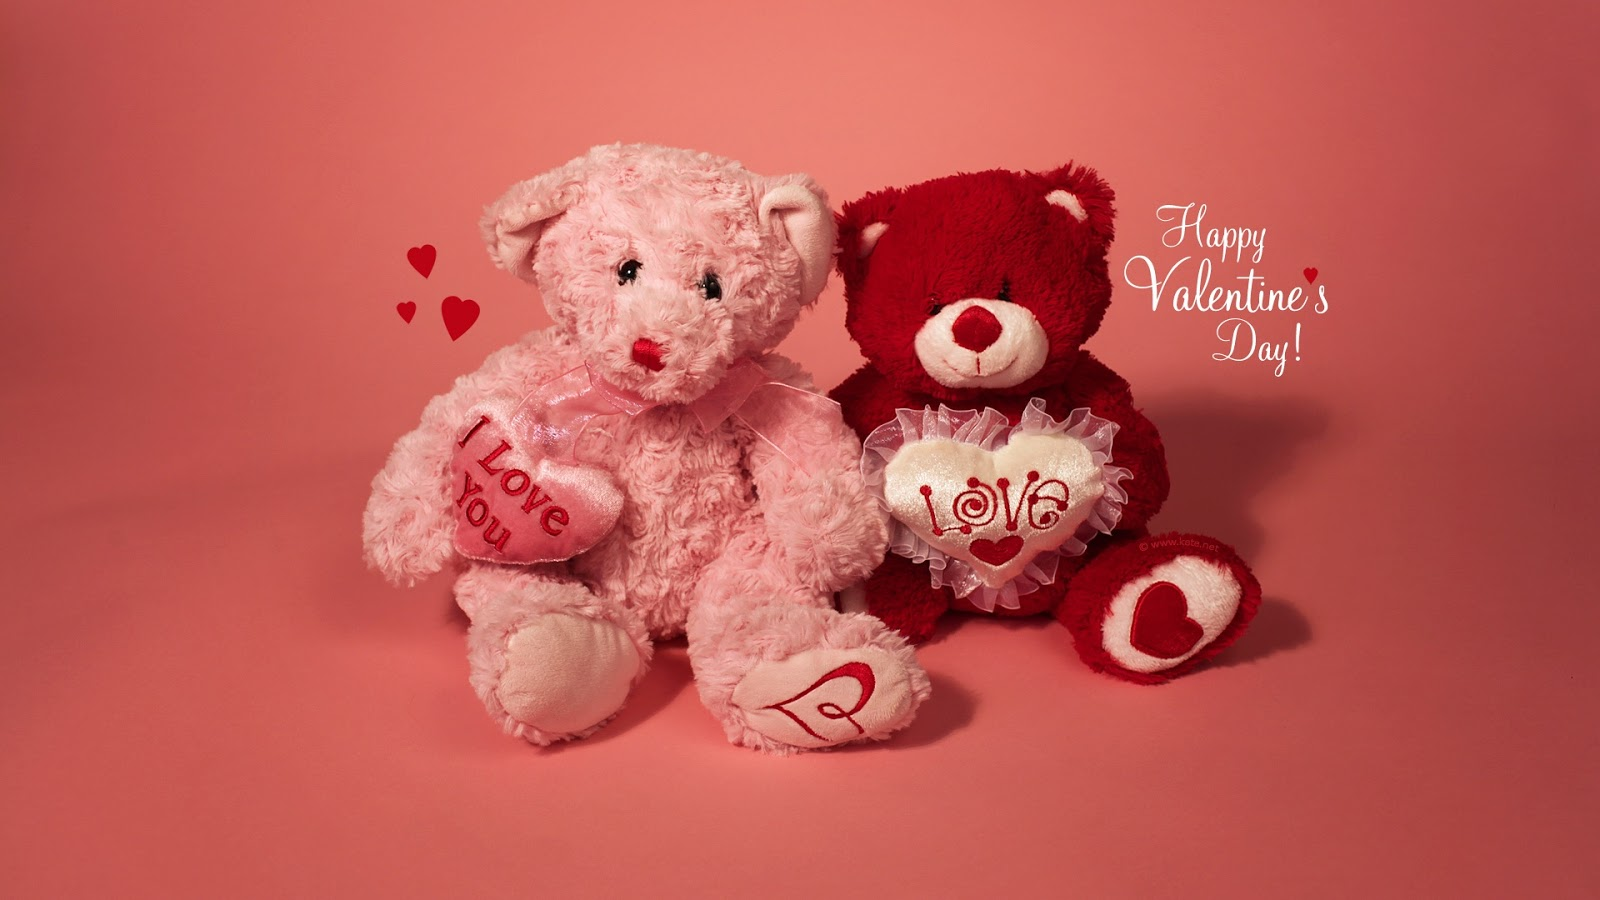 Happy Valentines Day Love HD 1920x1080 Wallpaper